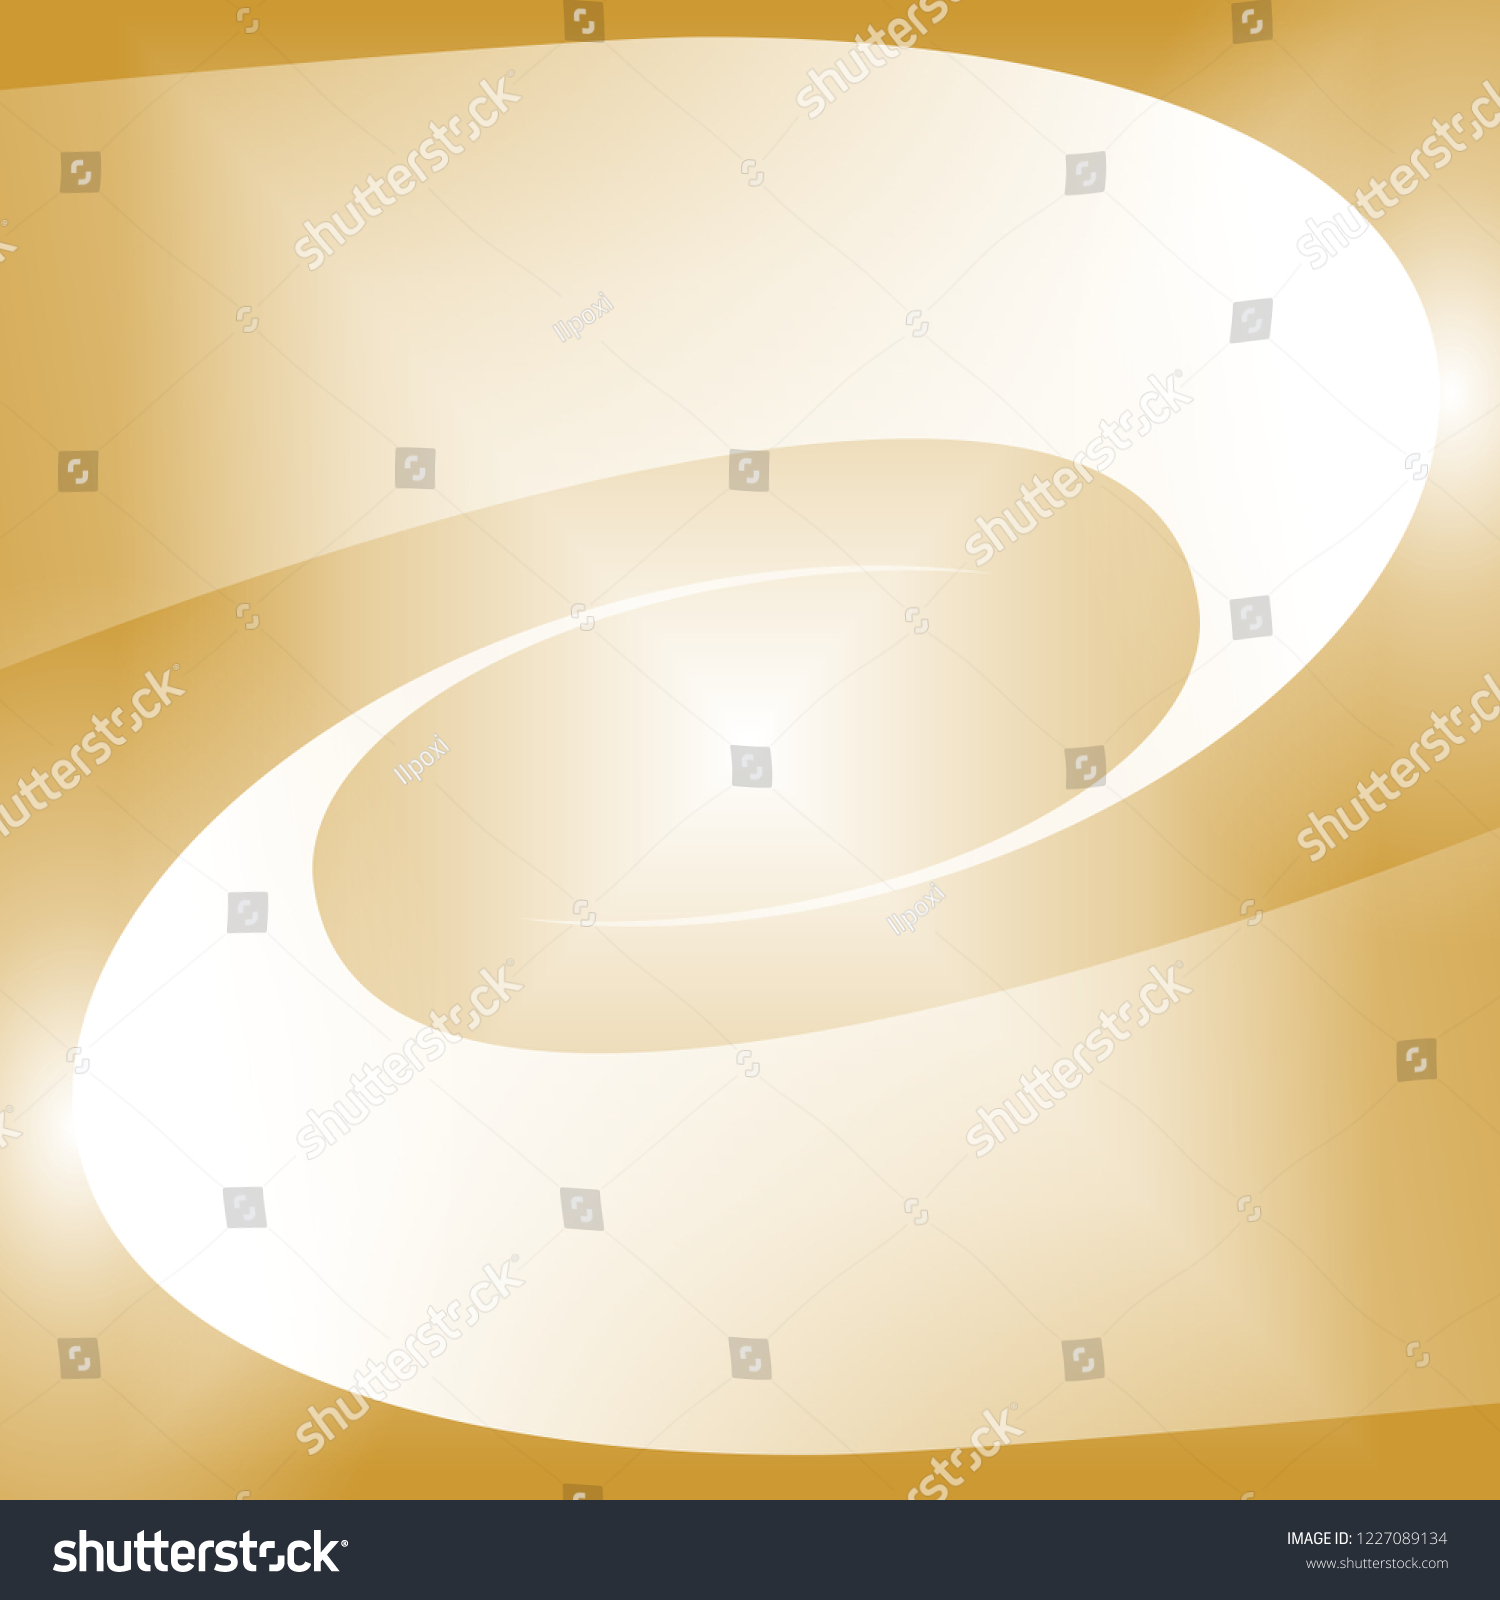 Instant Beautiful Golden Square Empty Campaign Stock Illustration